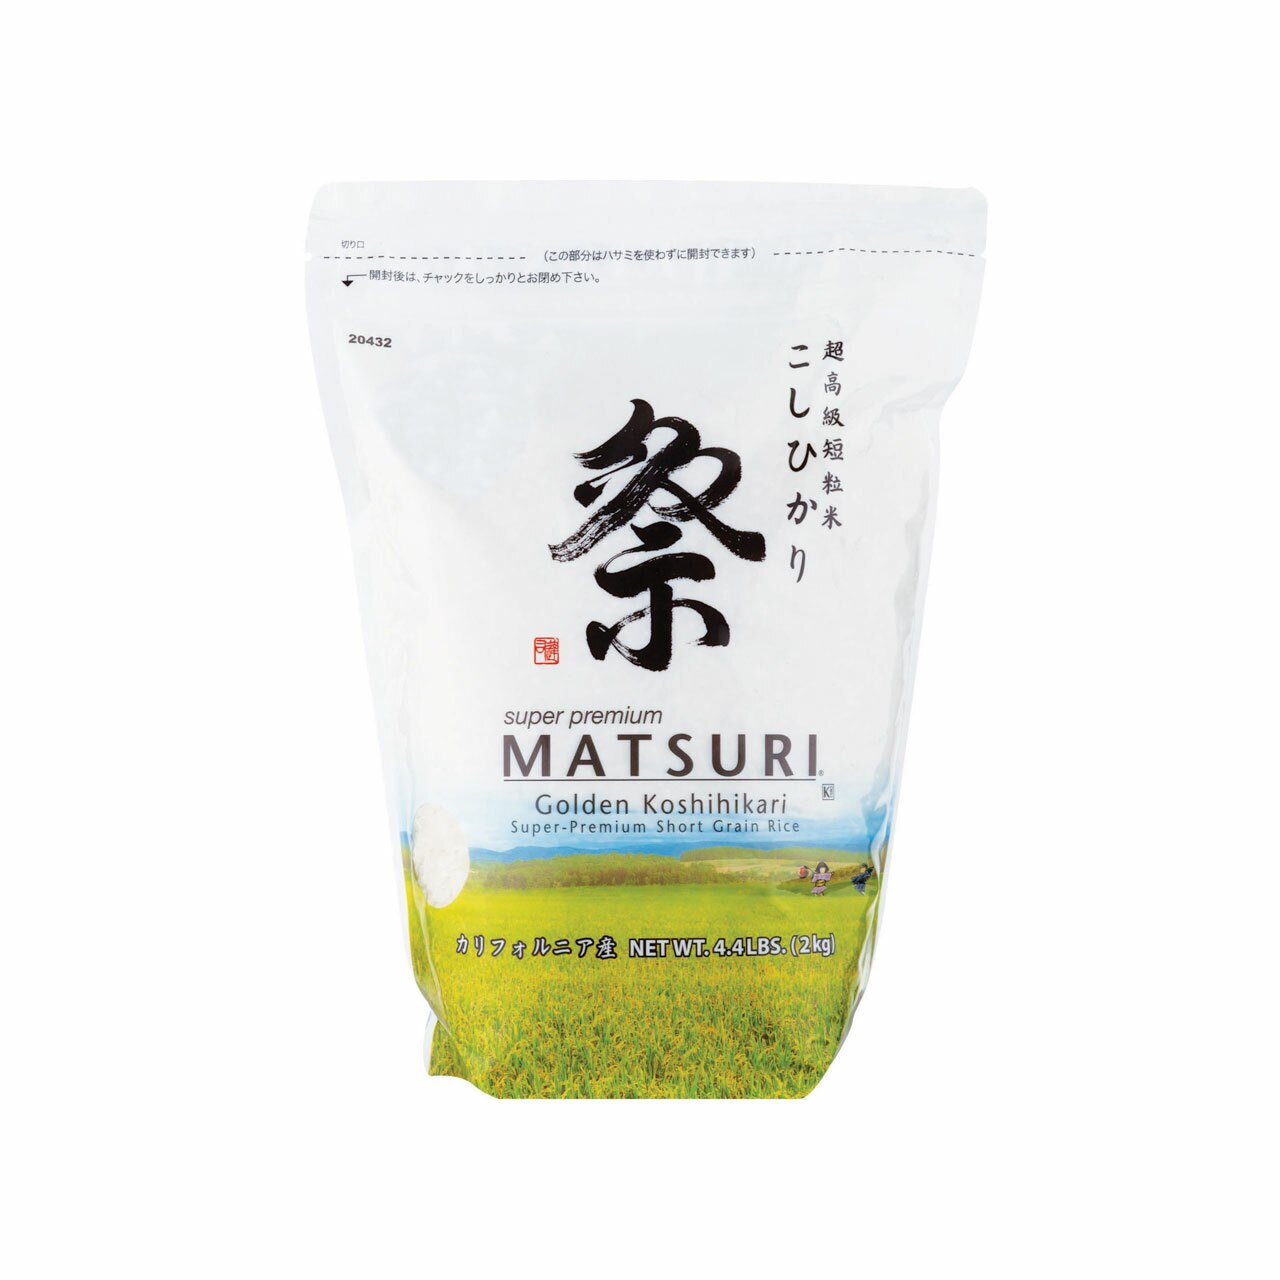 Matsuri Koshihikari Short Grain White Rice 2 kg (4.4 lbs) [Japanese Grocery Delivery to NY NJ]